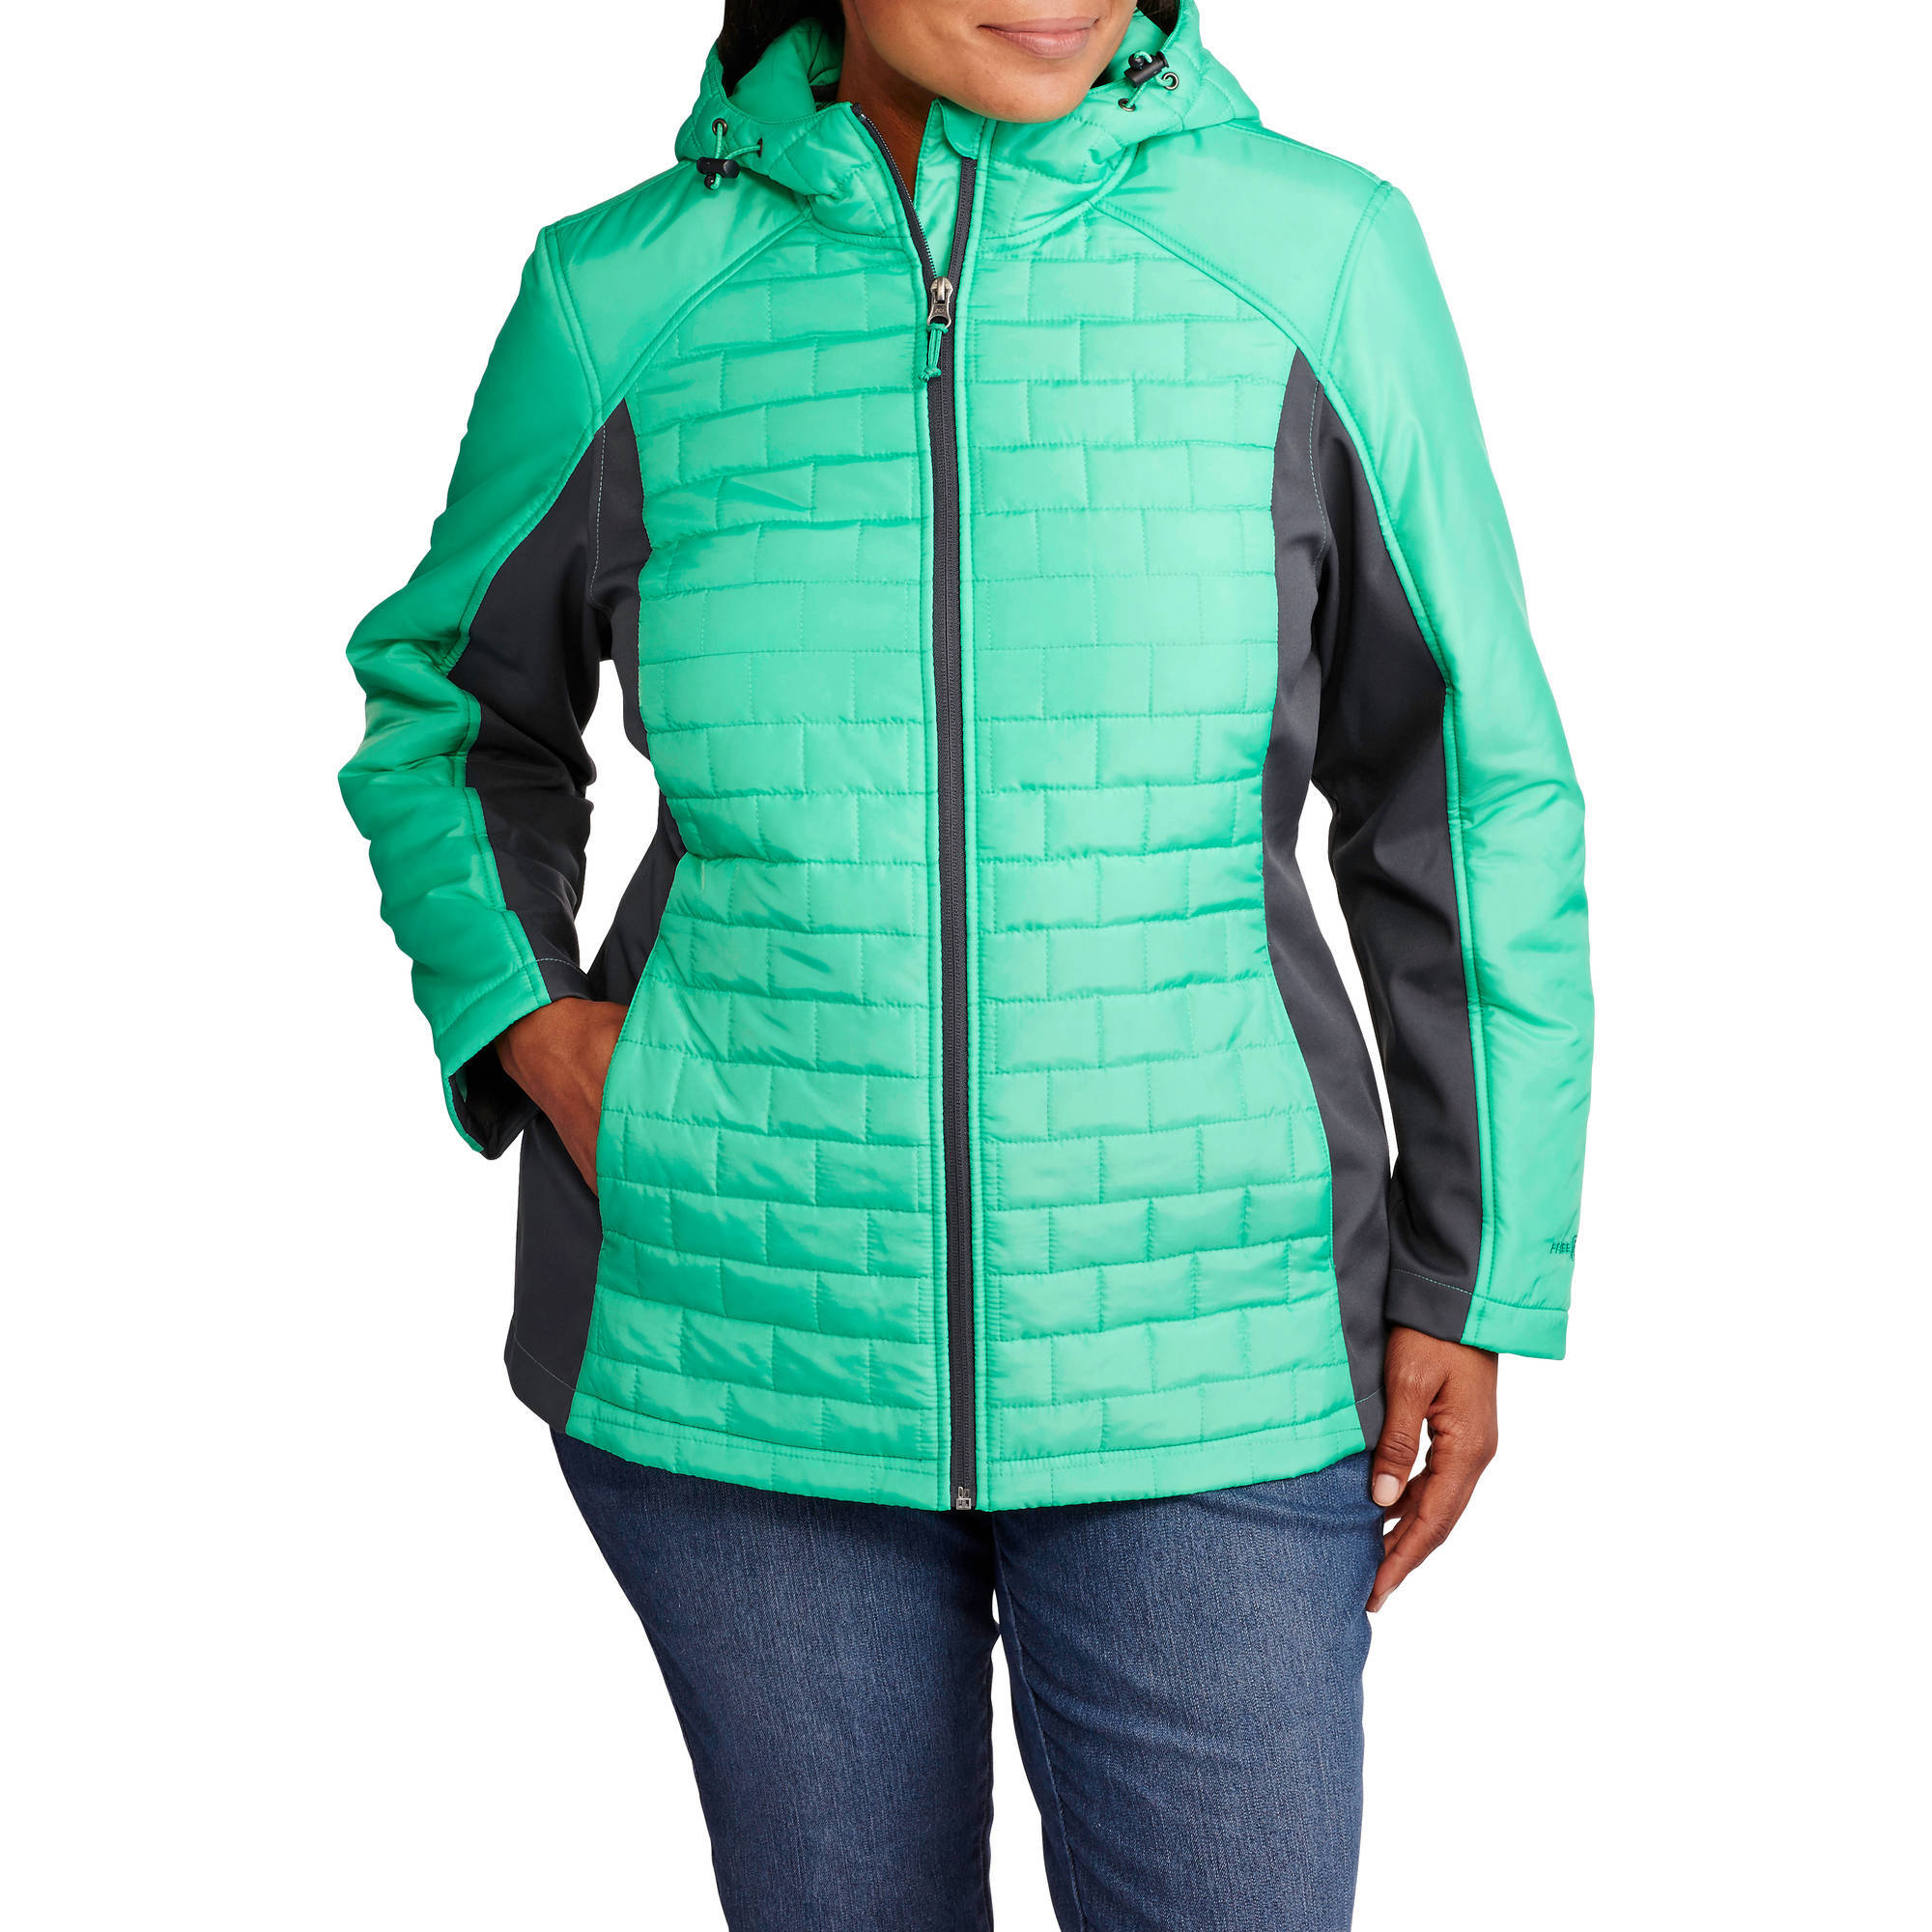 Free Tech Women's Plus-Size Sleek Quilted Jacket with Softshell Sleeves